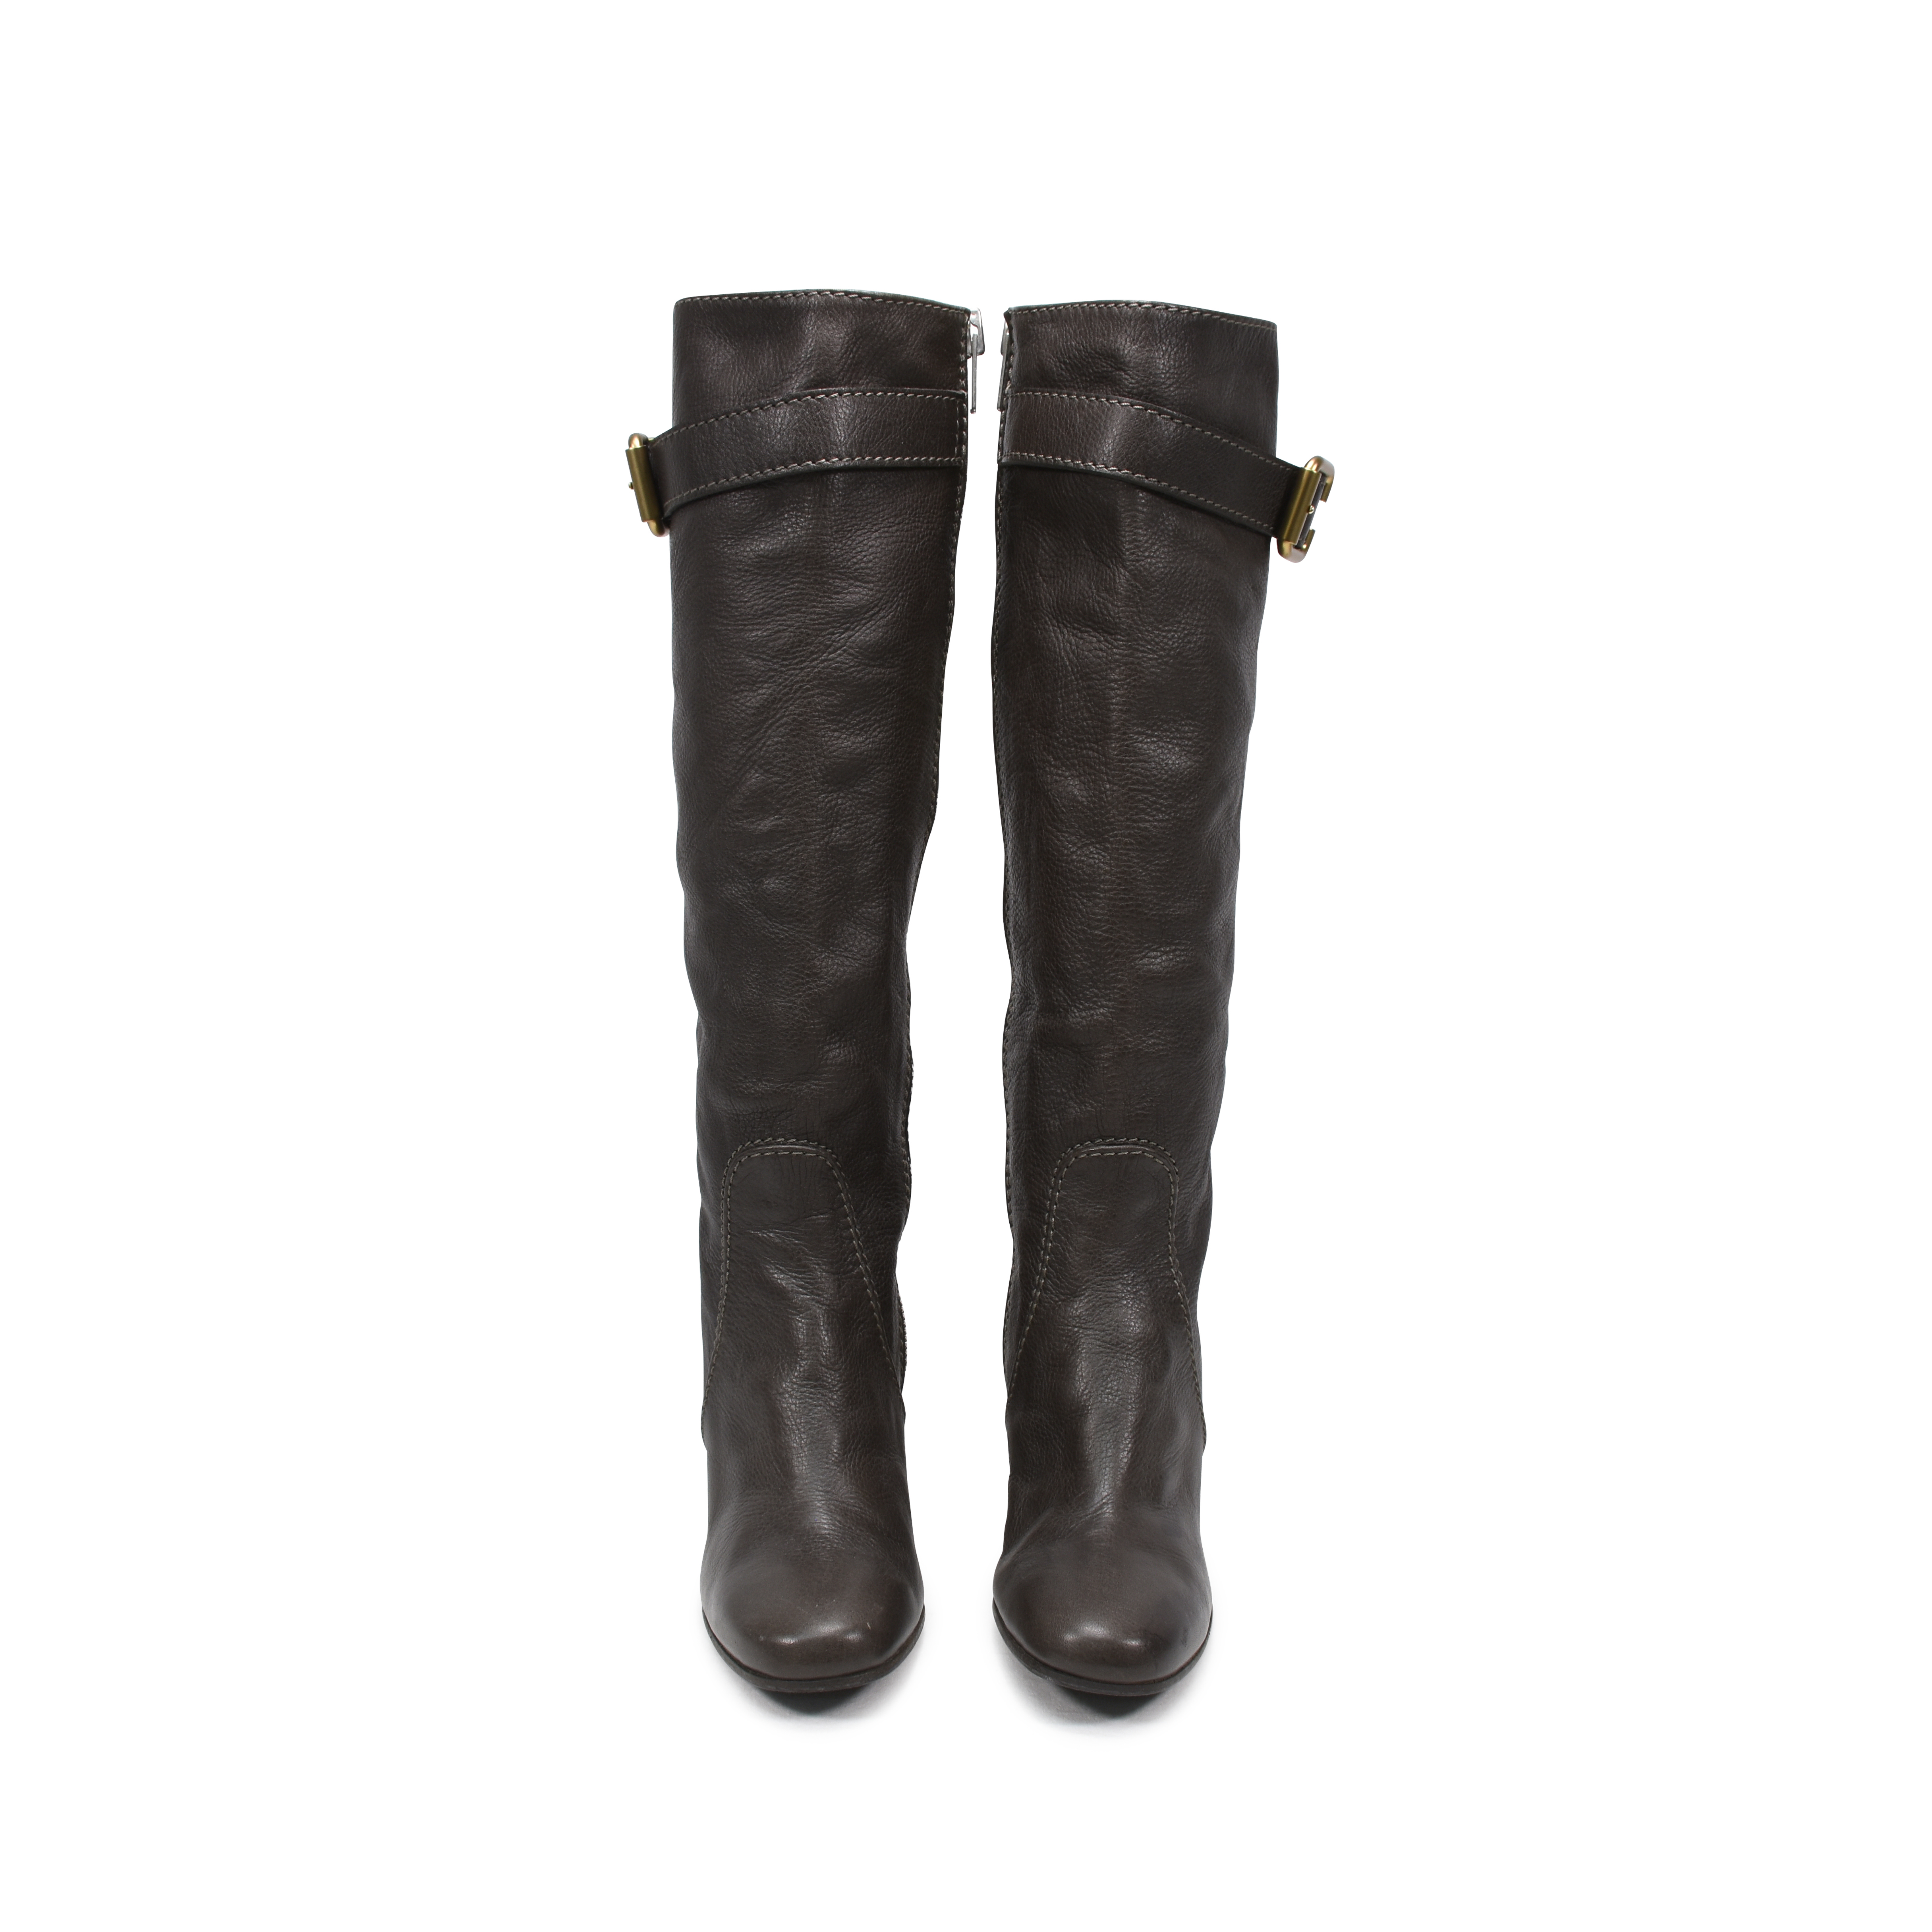 575f954426b Authentic Second Hand Chloé Knee-high Boots (PSS-369-00012)